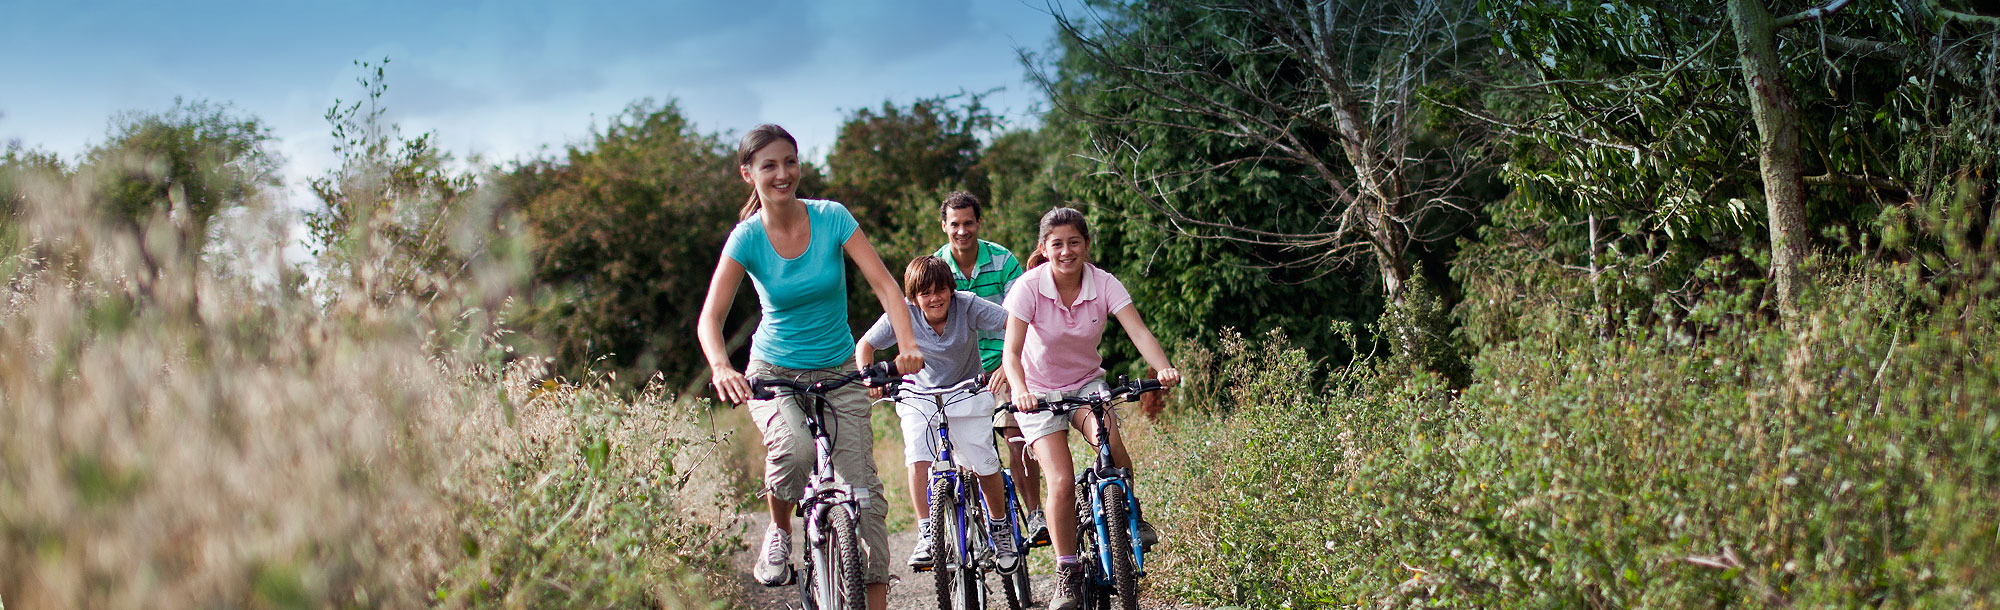 Holidays in Essex - Cycling holidays